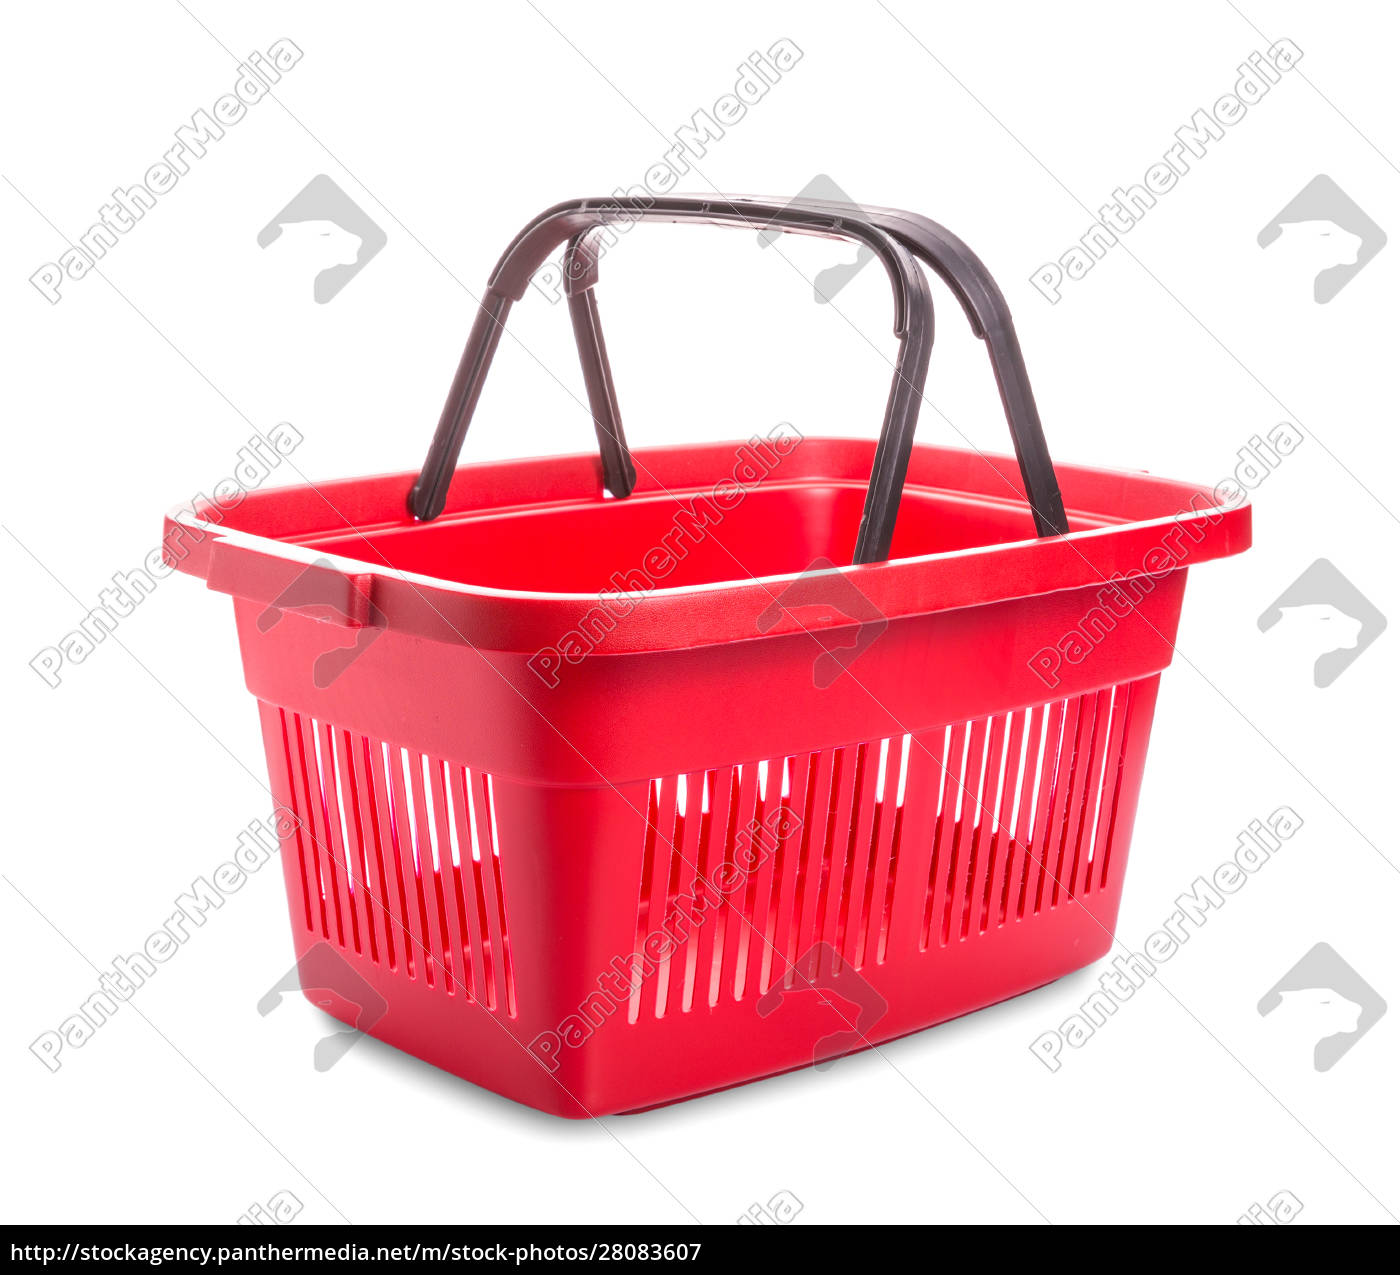 red, cart - 28083607